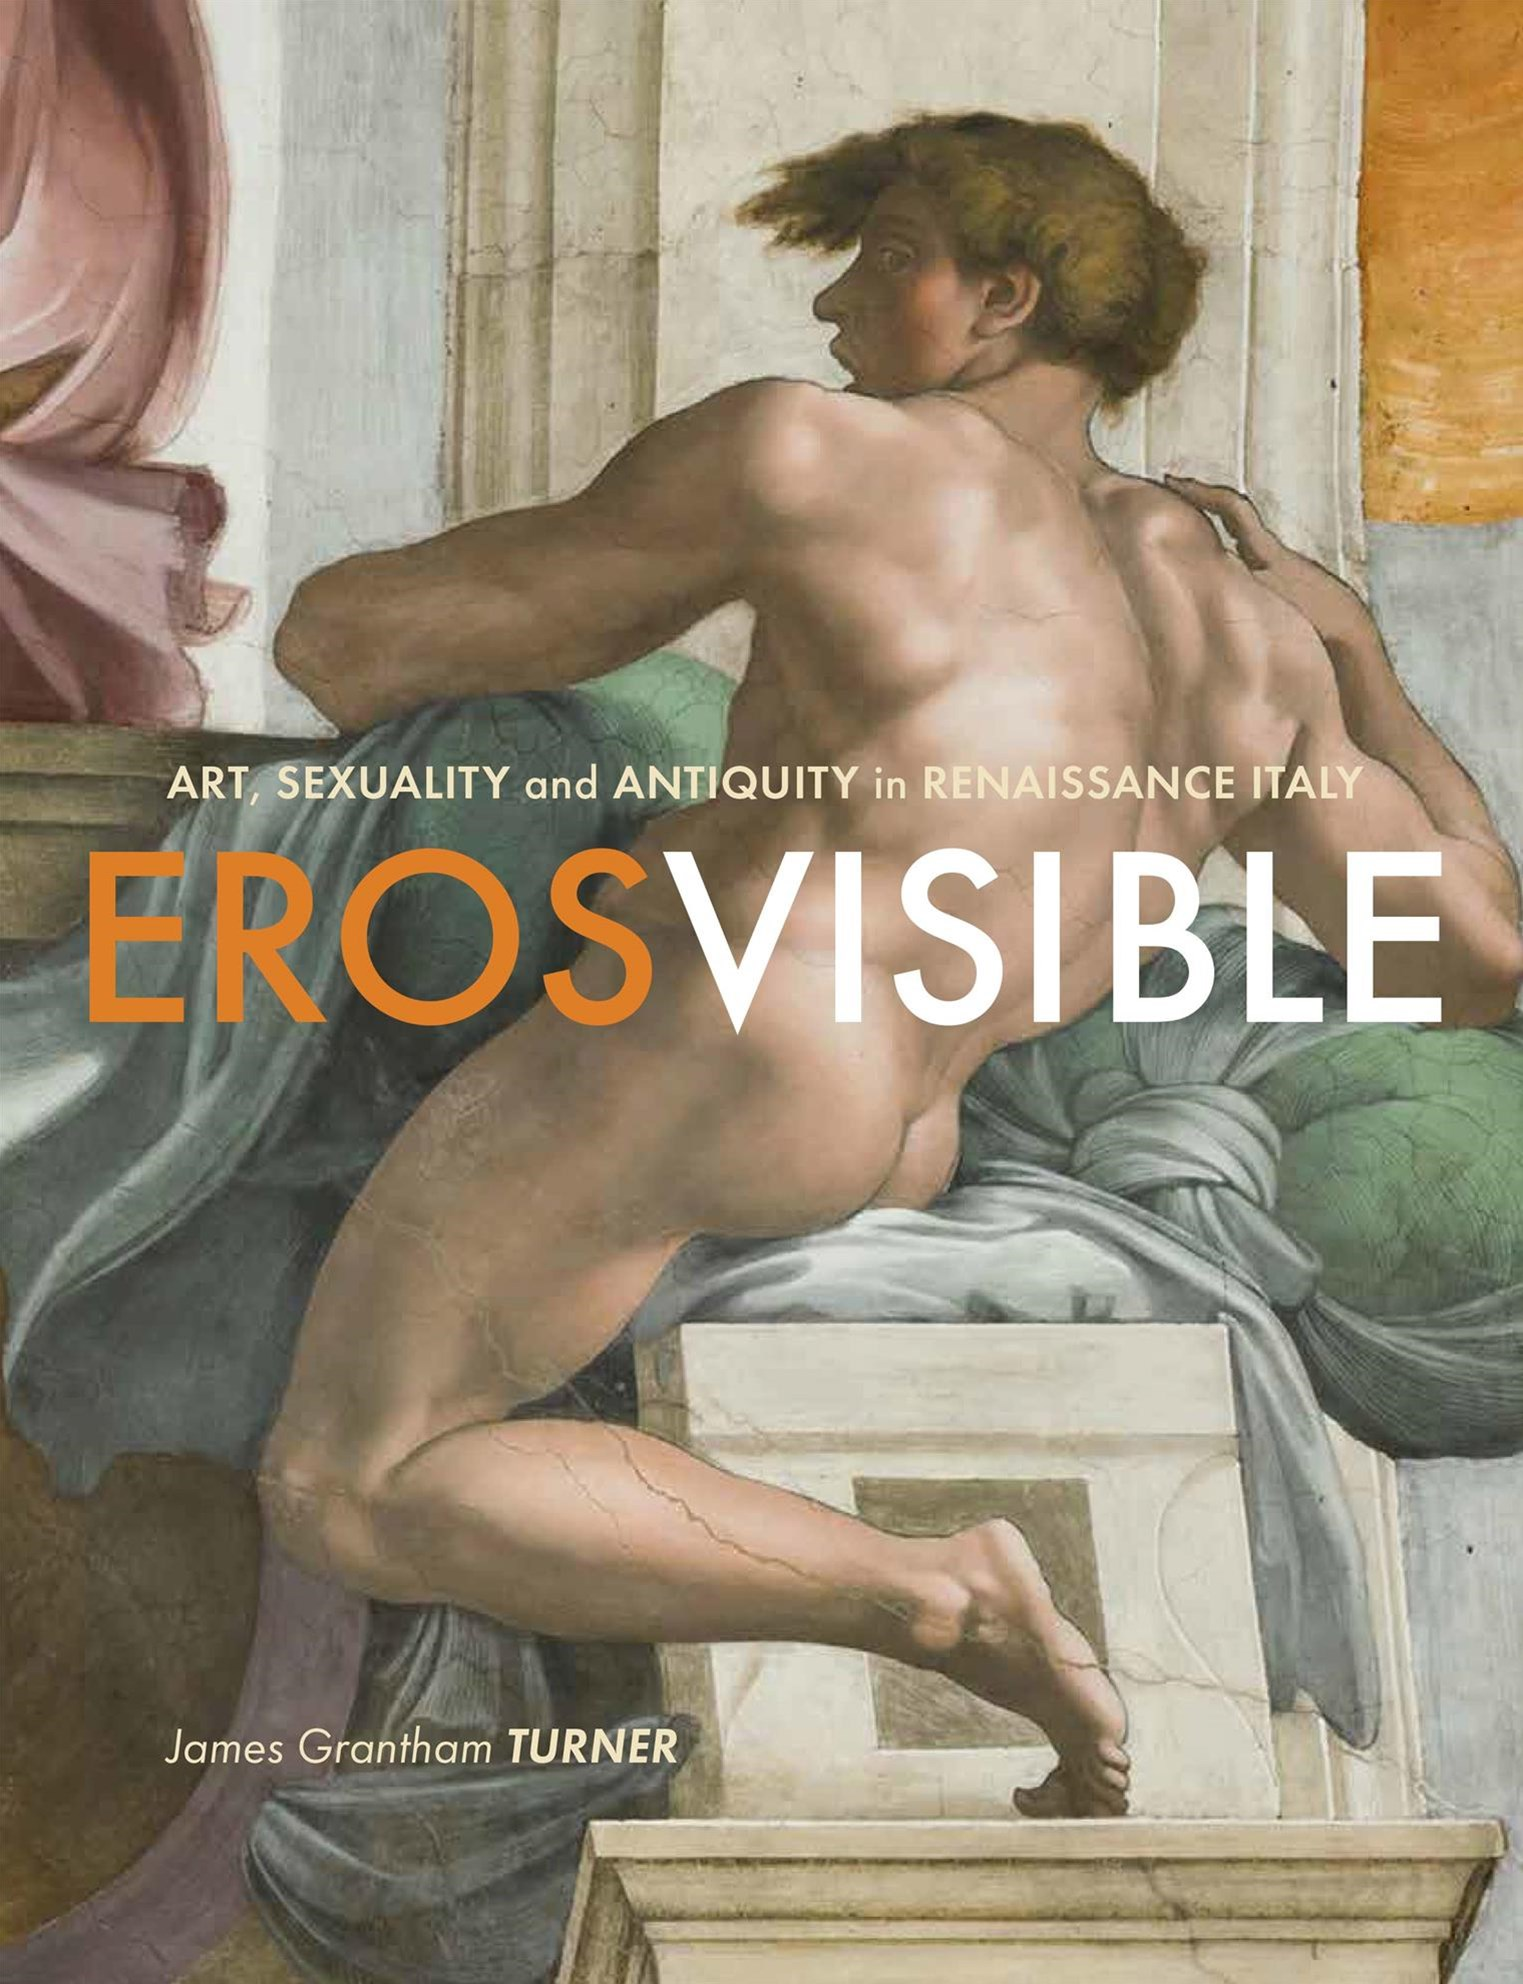 Eros Visible: Art, Sexuality, and Antiquity in Renaissance Italy